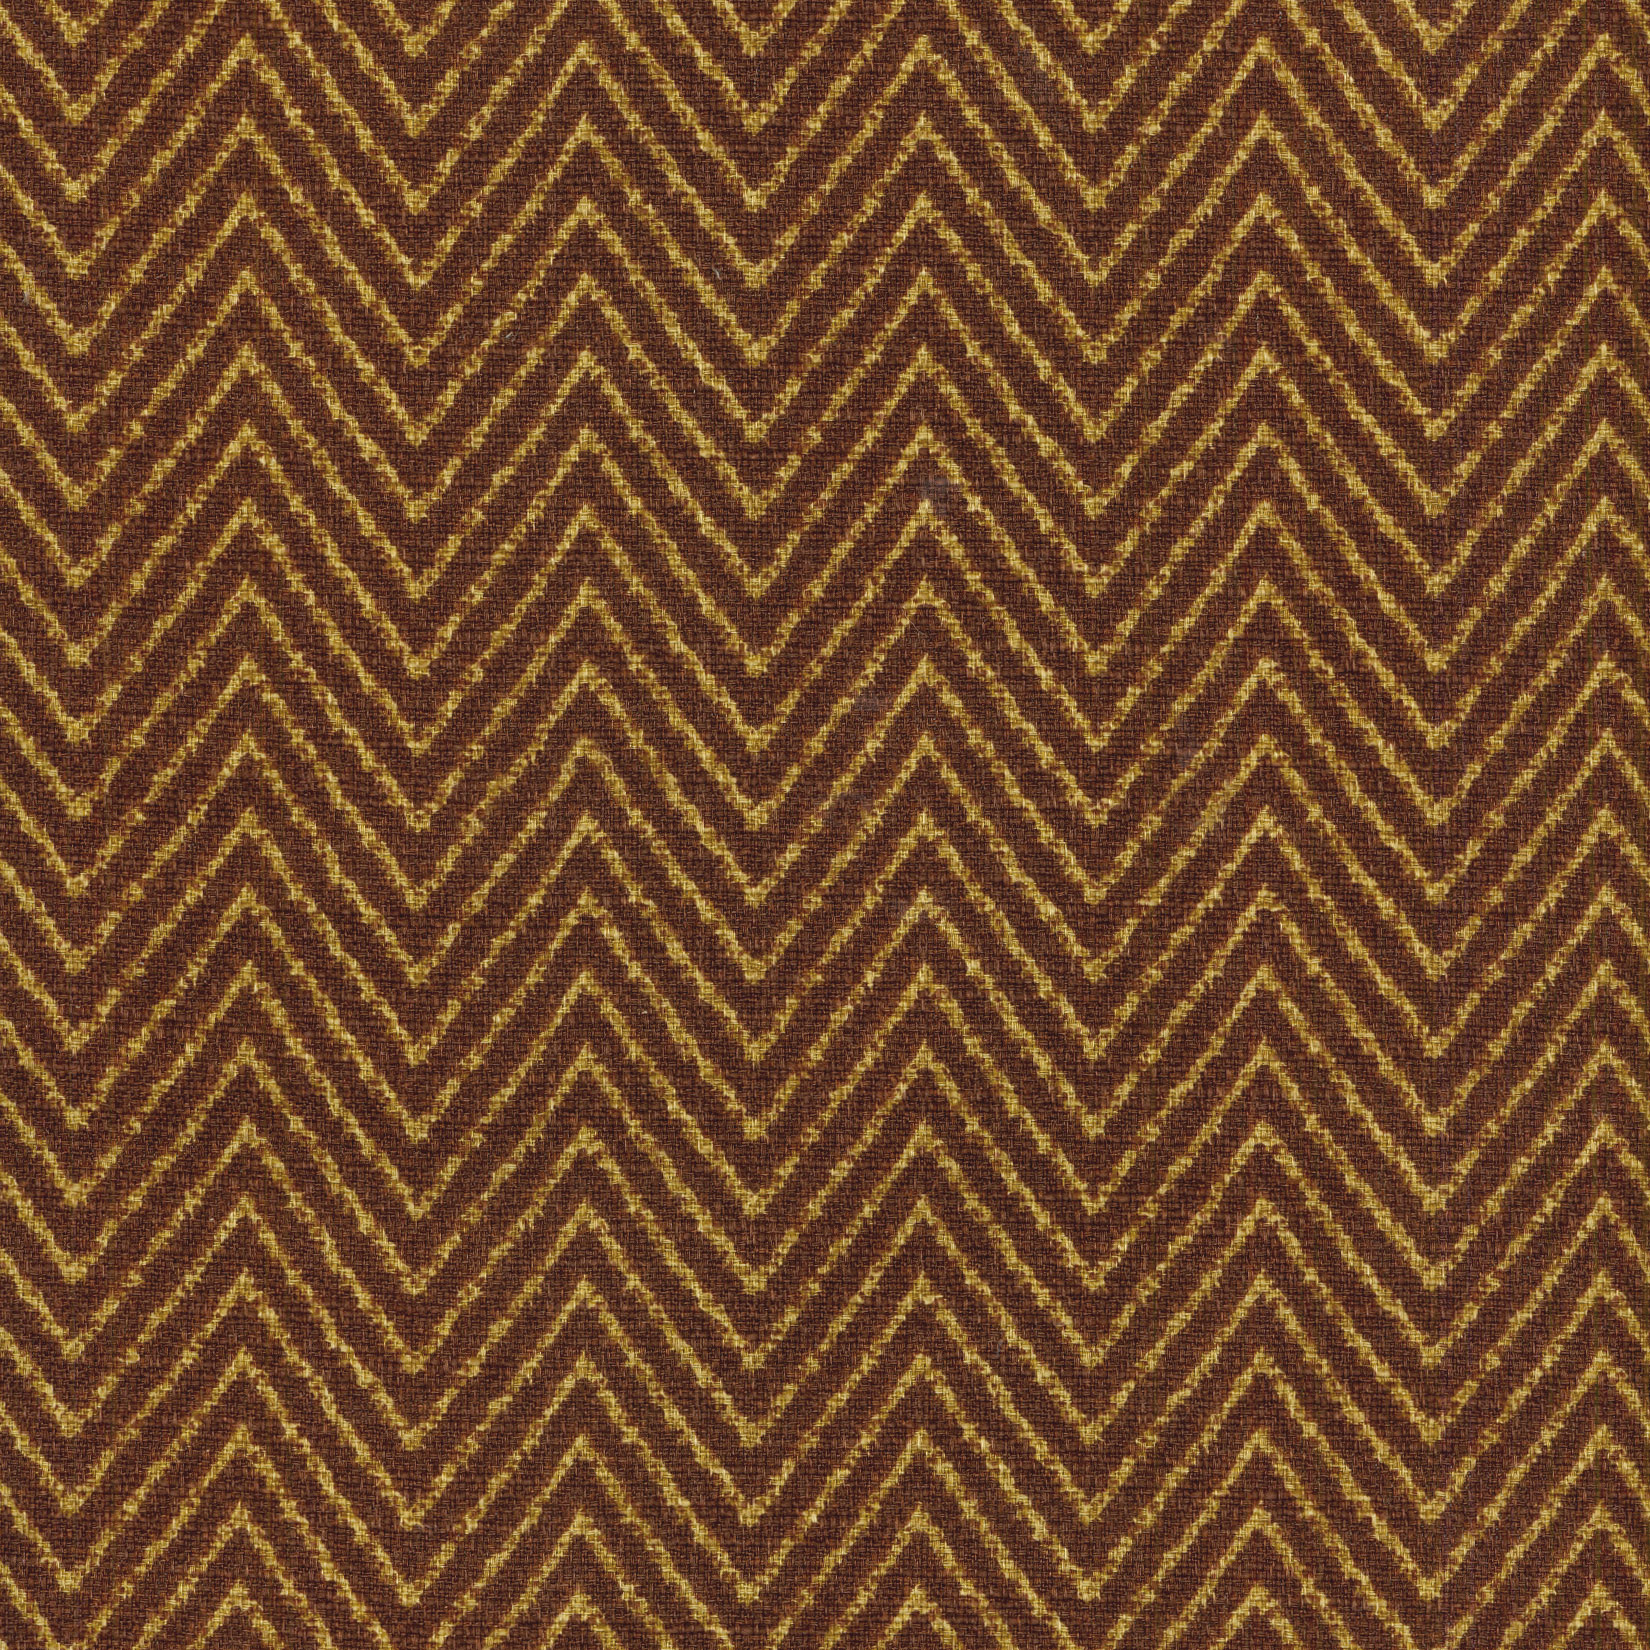 SMC Designs Lightweight Decor Fabric- Ballyhoo Sussex Teak